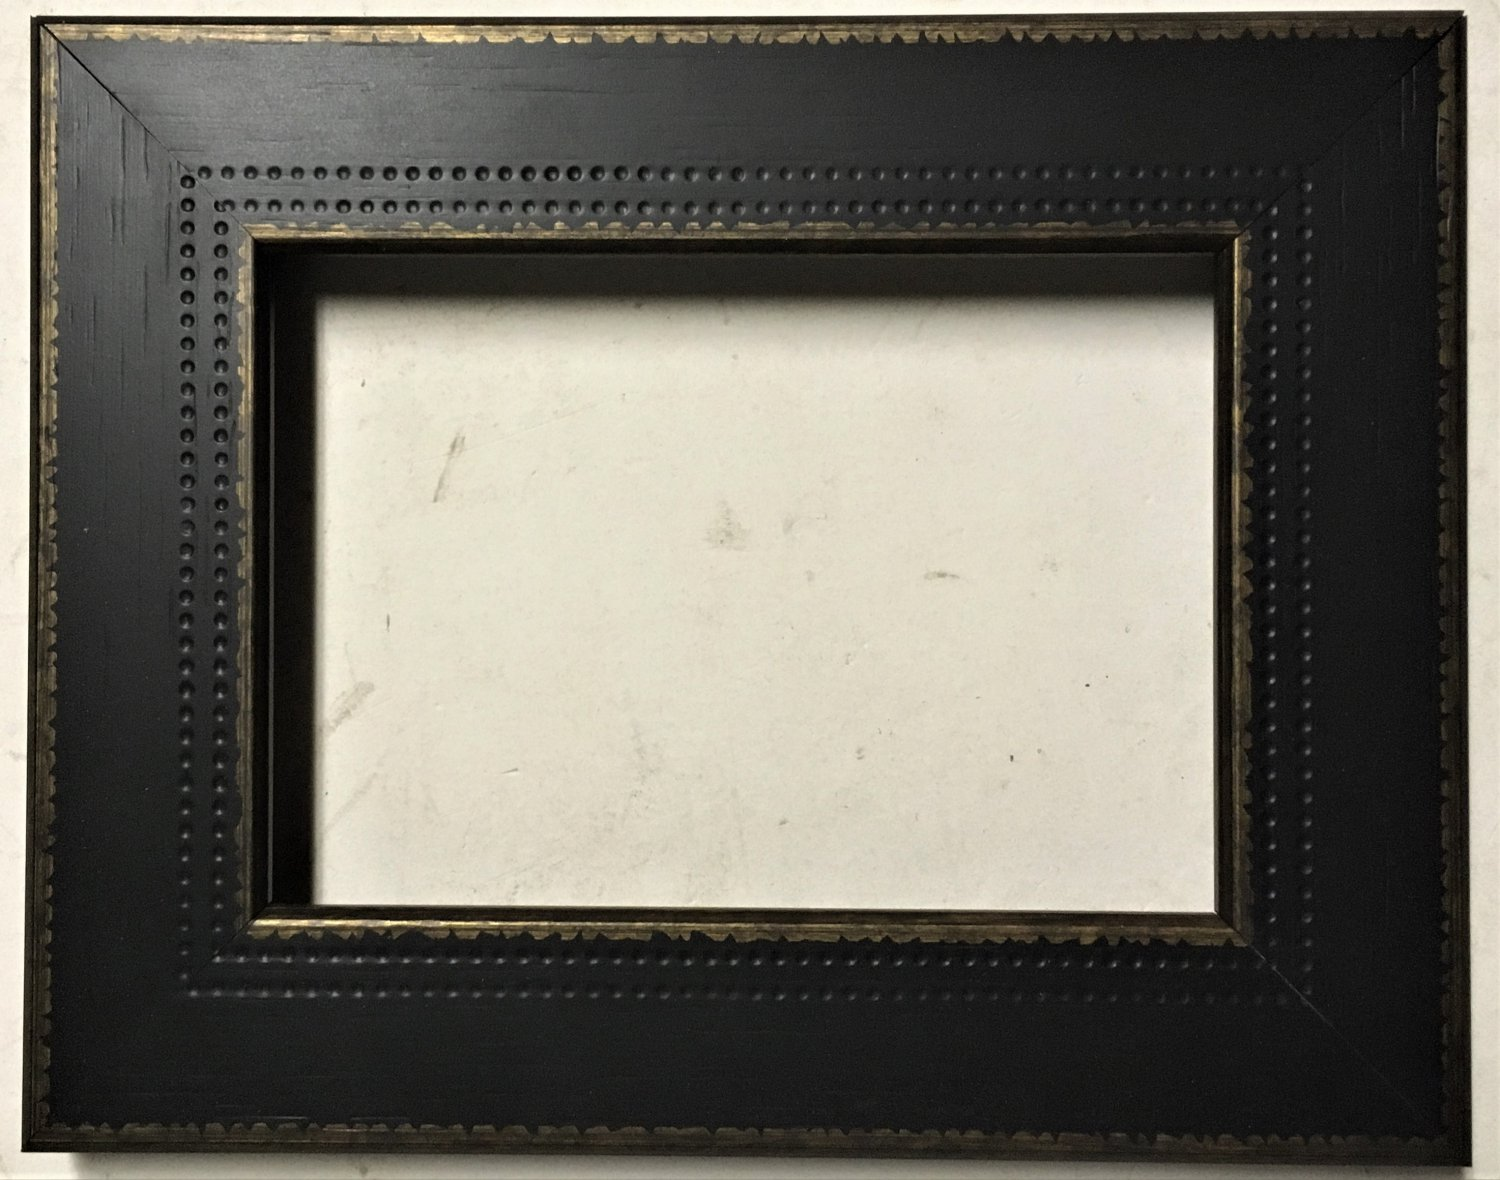 12 x 24 1 3 4 black w gold picture frame